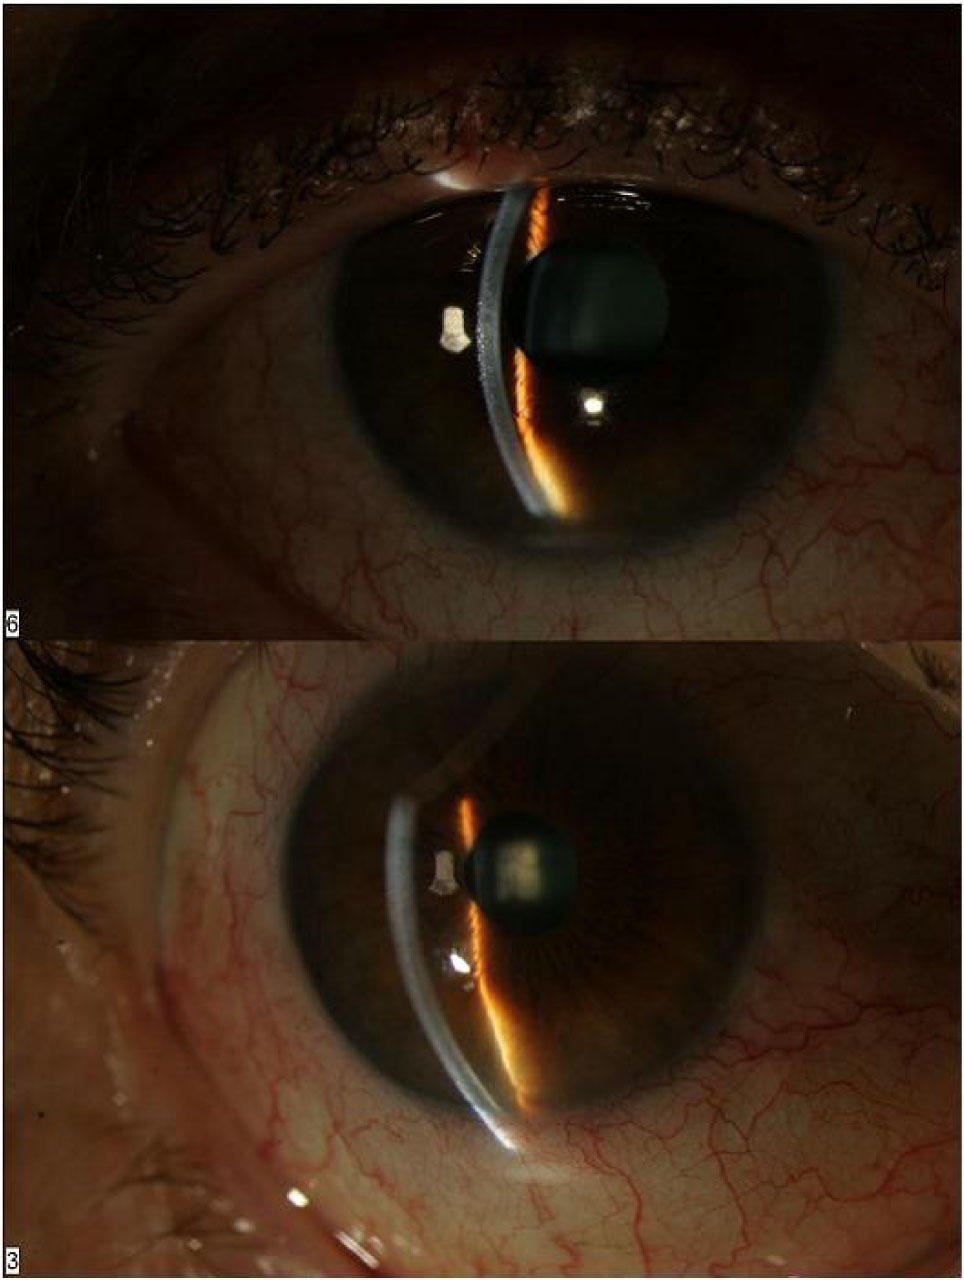 Slit Lamp Photograph of the Right Eye Before (top) and After Laser Iridotomy (bottom). Note the Loss of the Iris Bombe and the Significantly Deeper Chamber After the Laser Peripheral Iridotomy.